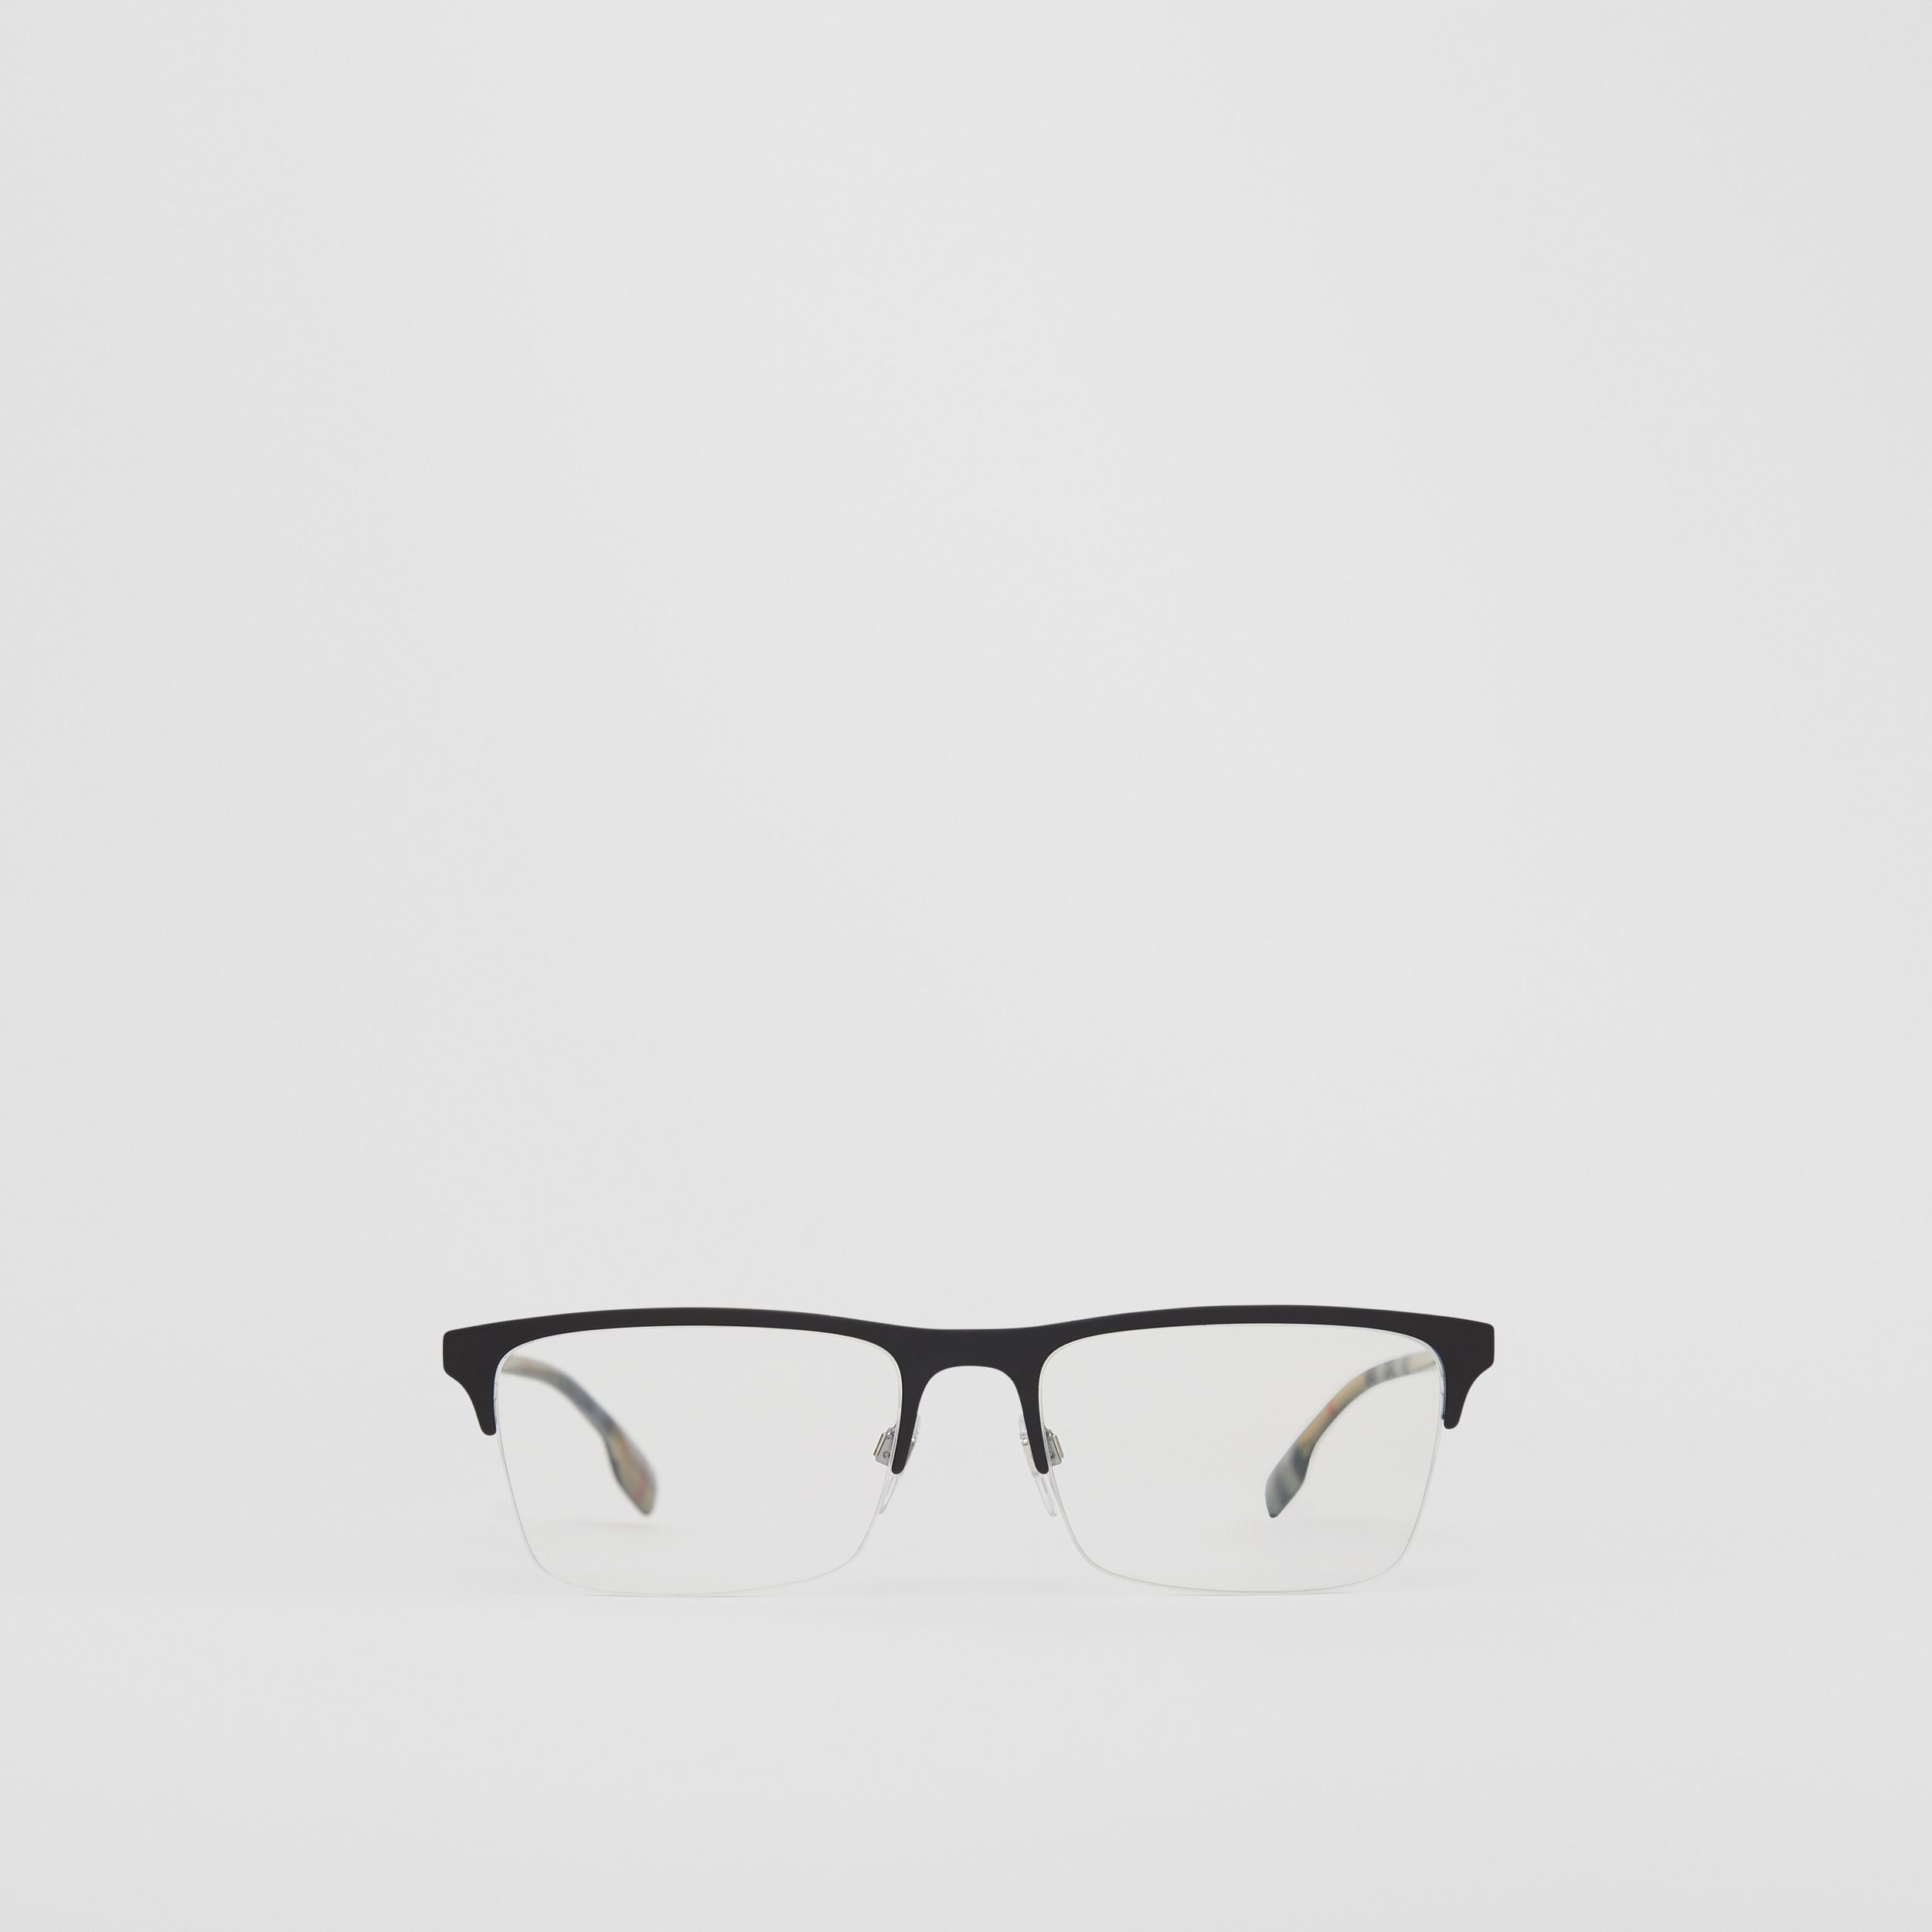 Rectangular Optical Frames in Matte Black - Men | Burberry - 1